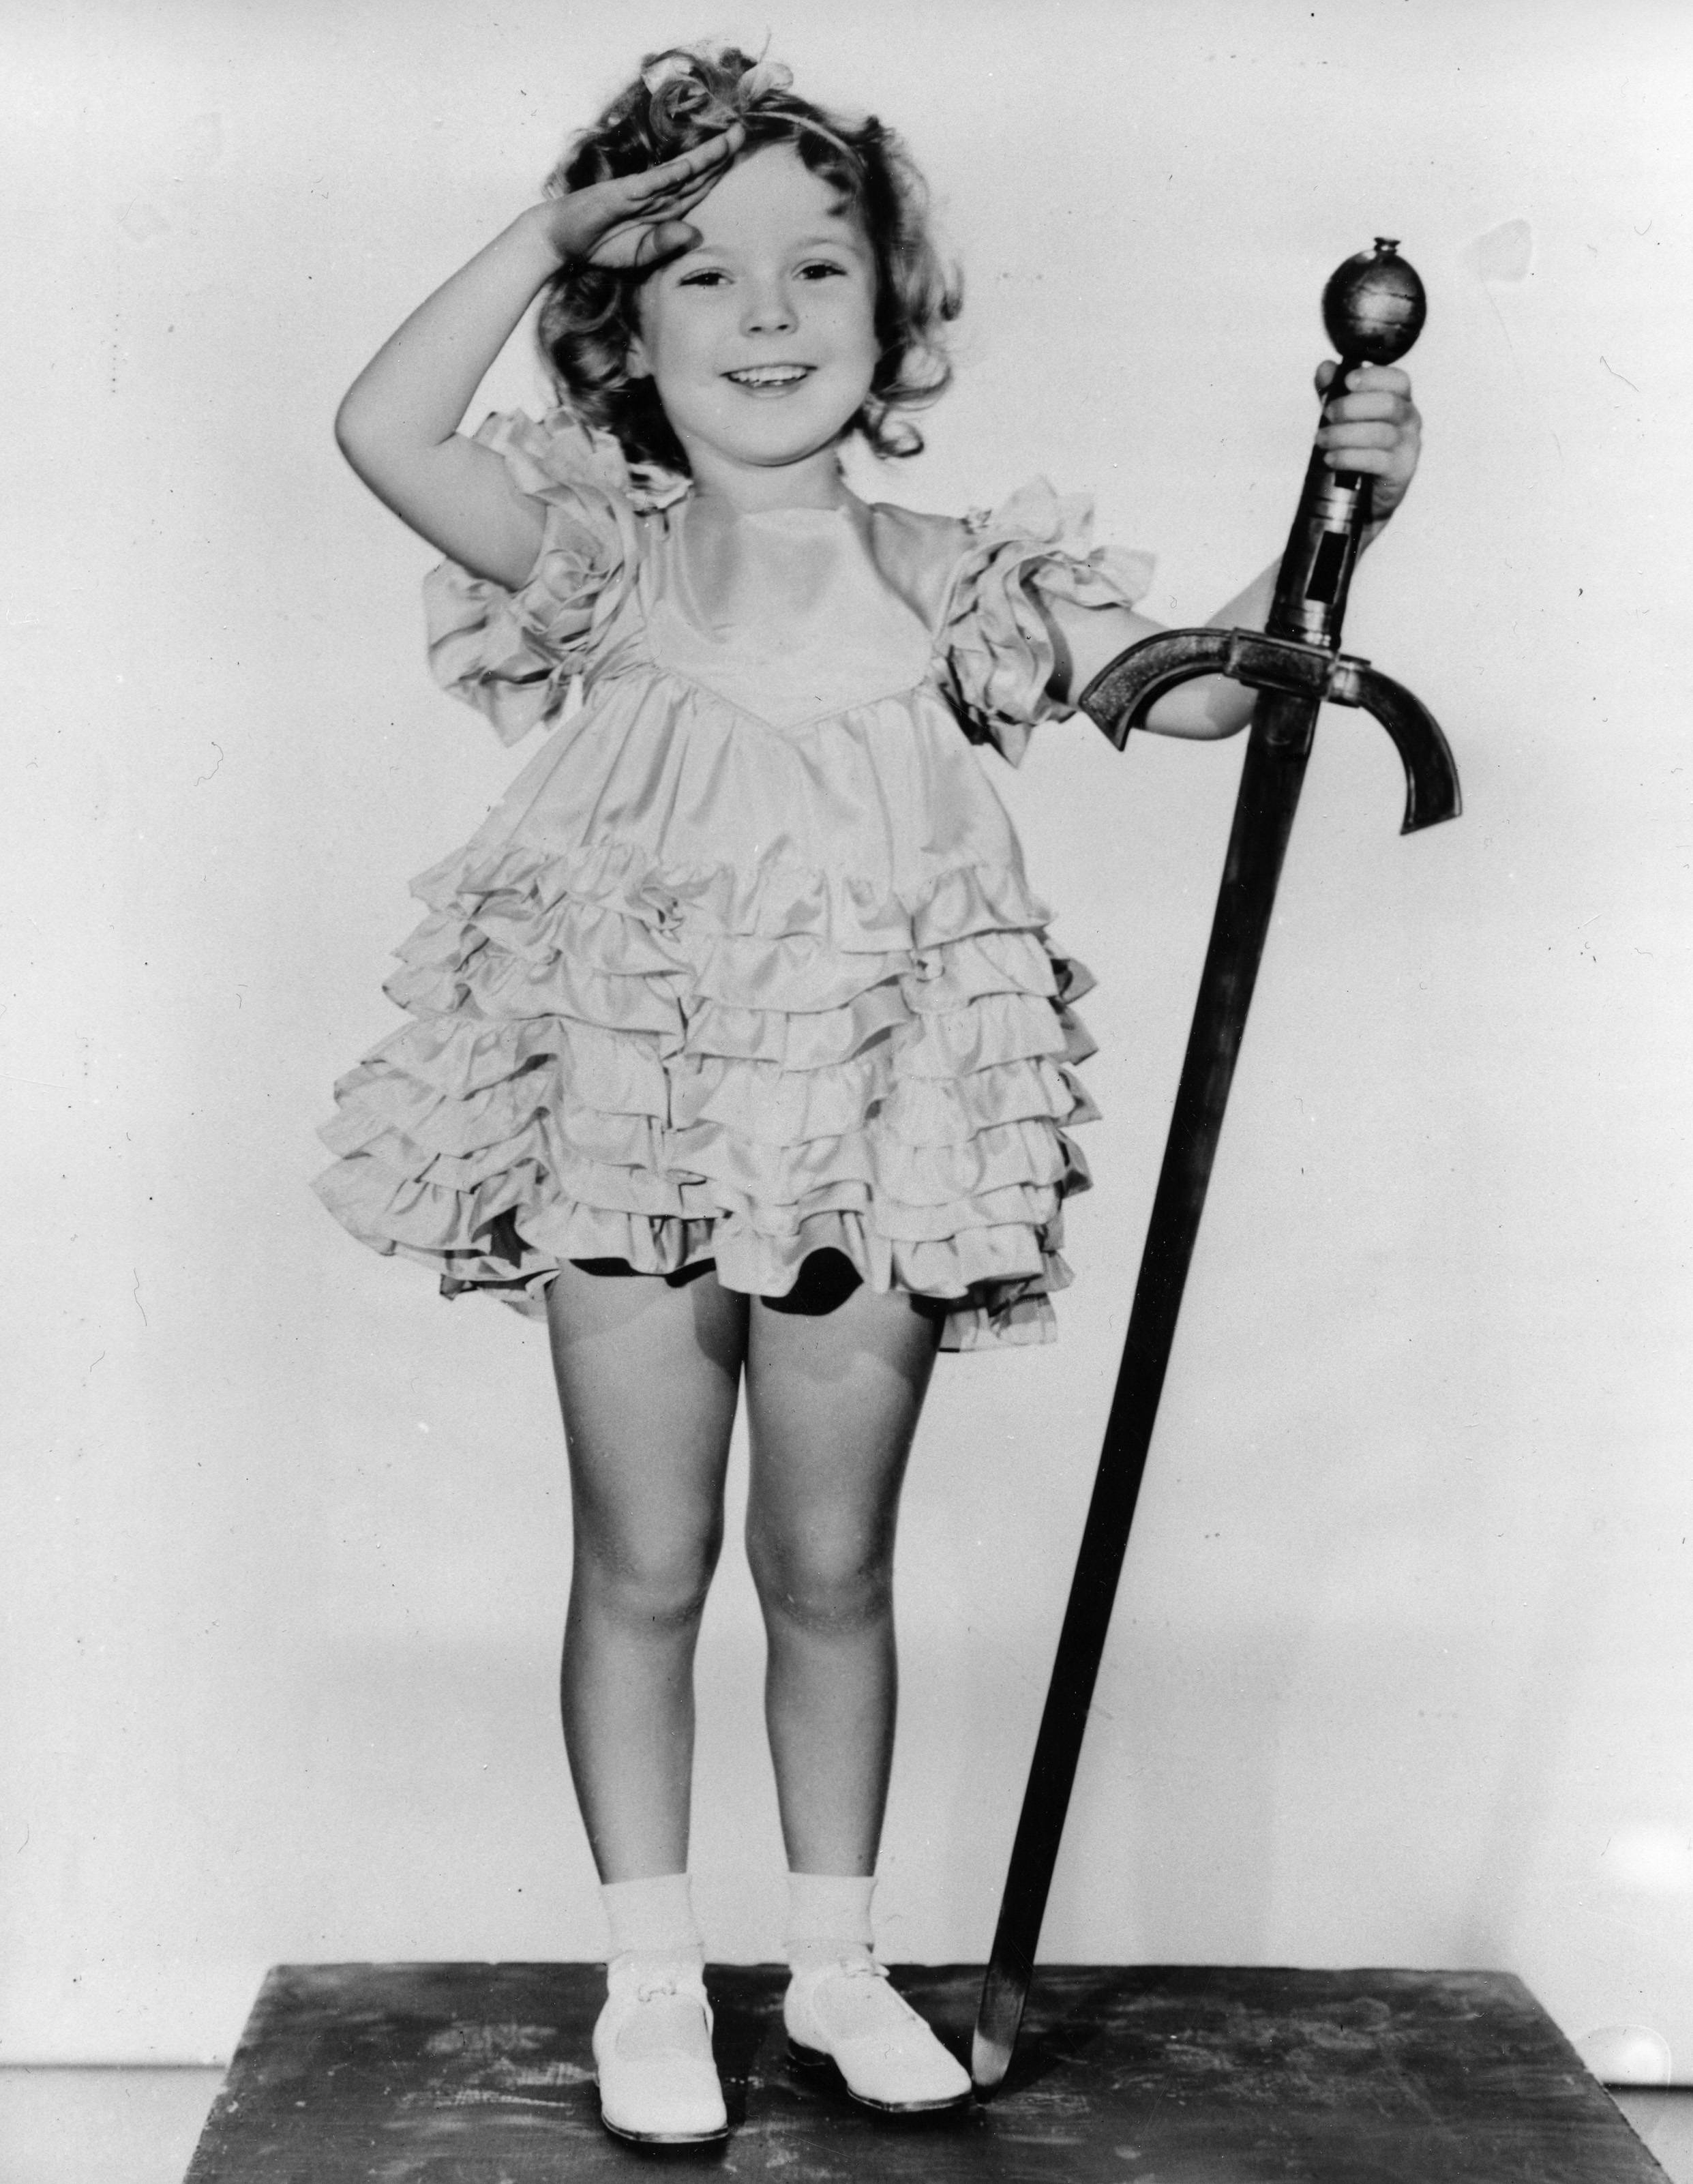 Shirley Temple, the curly-haired child star who put smiles on the faces of Depression-era moviegoers, has died. She was 85.